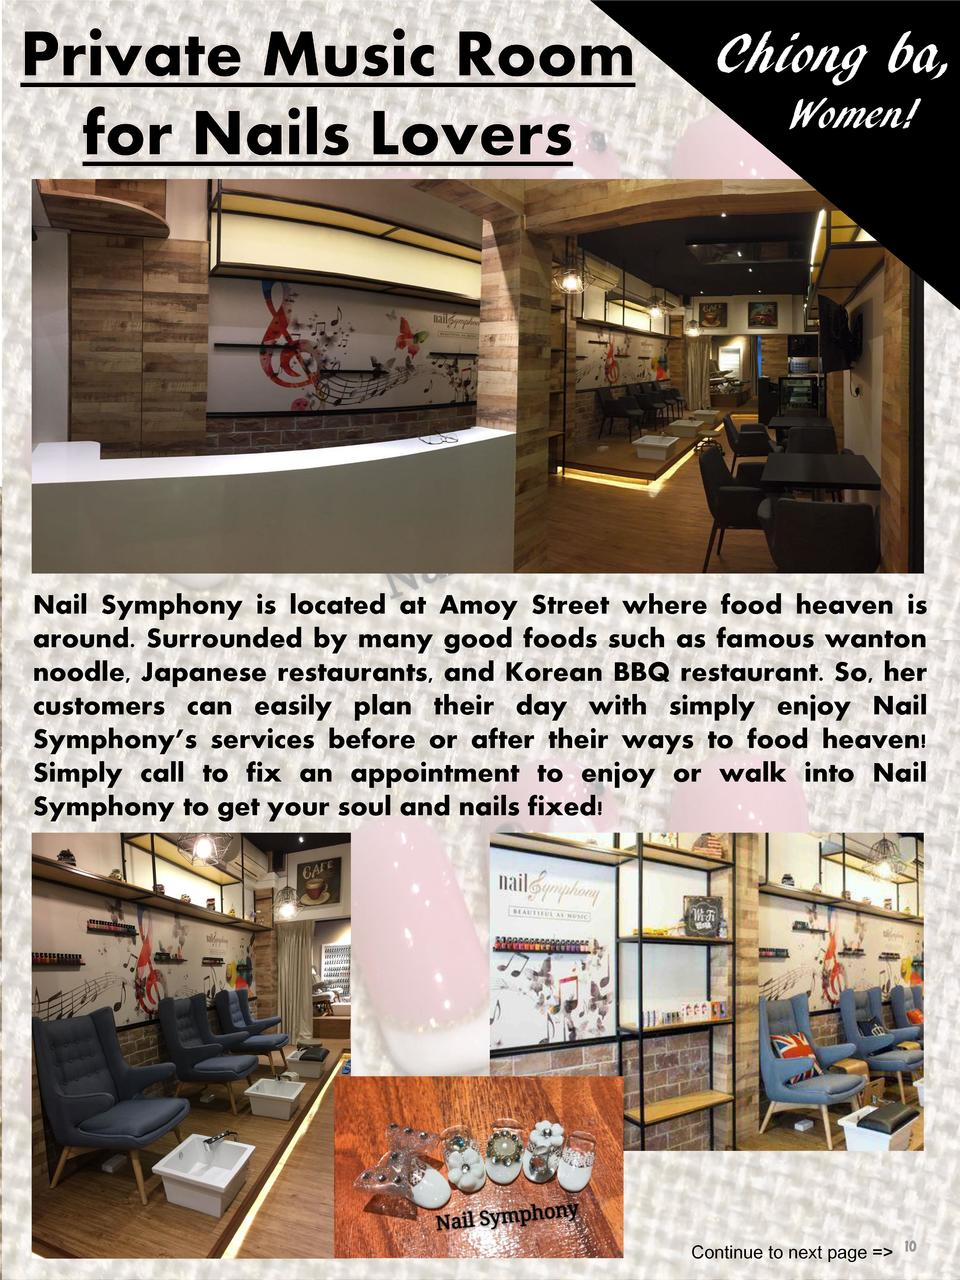 Chiong ba, Women   Nail Symphony is located at Amoy Street where food heaven is around. Surrounded by many good foods such...